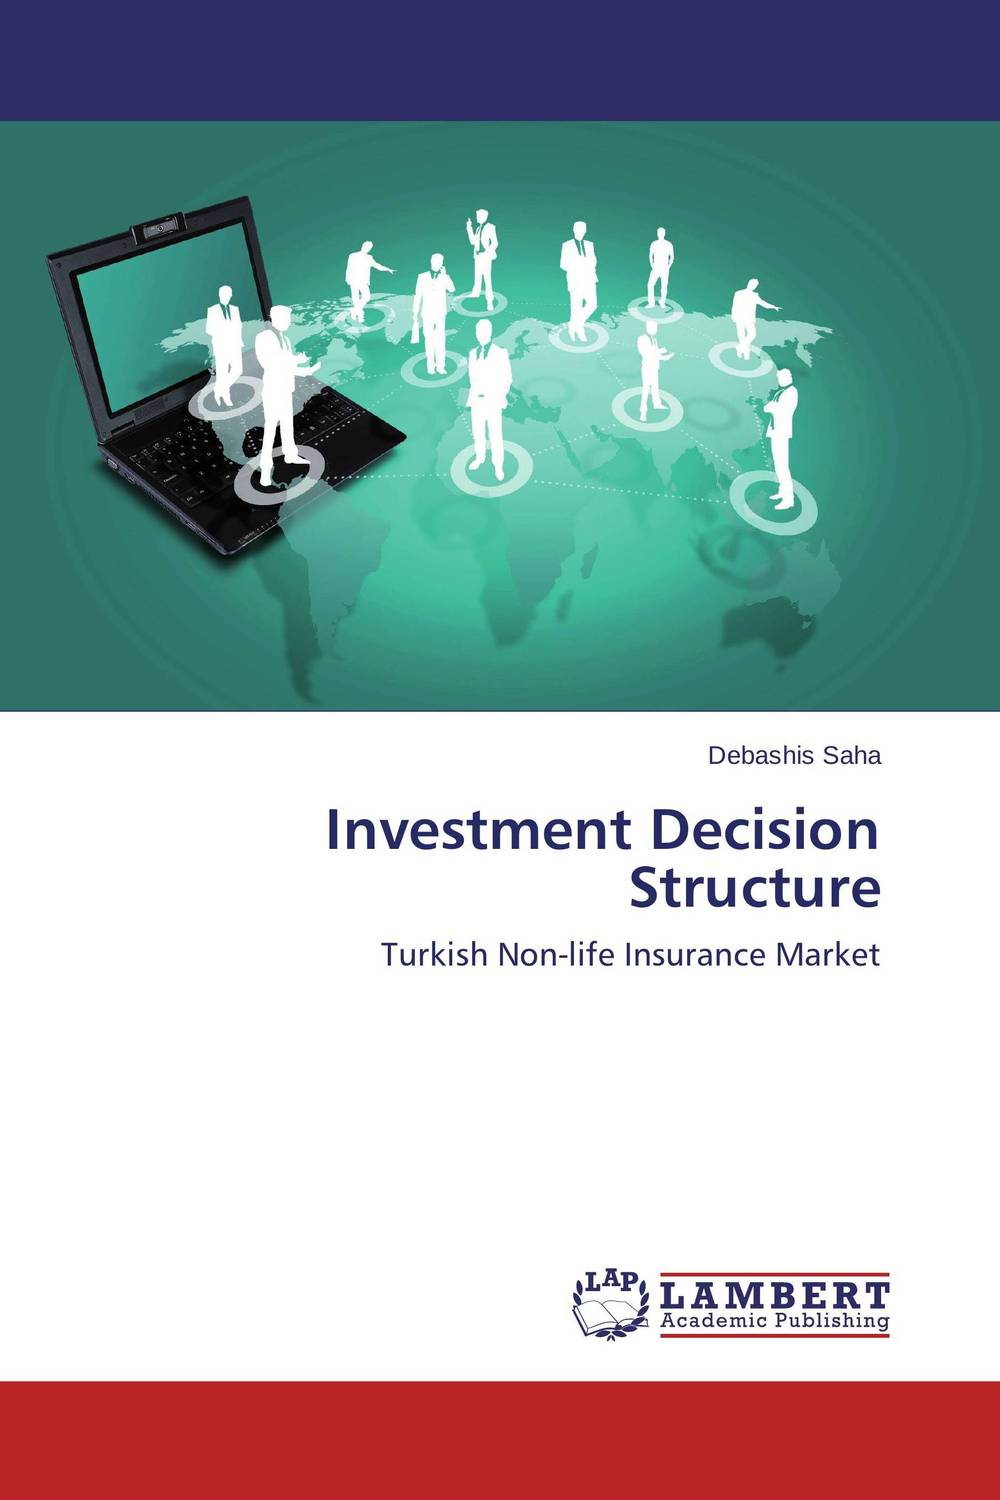 Investment Decision Structure